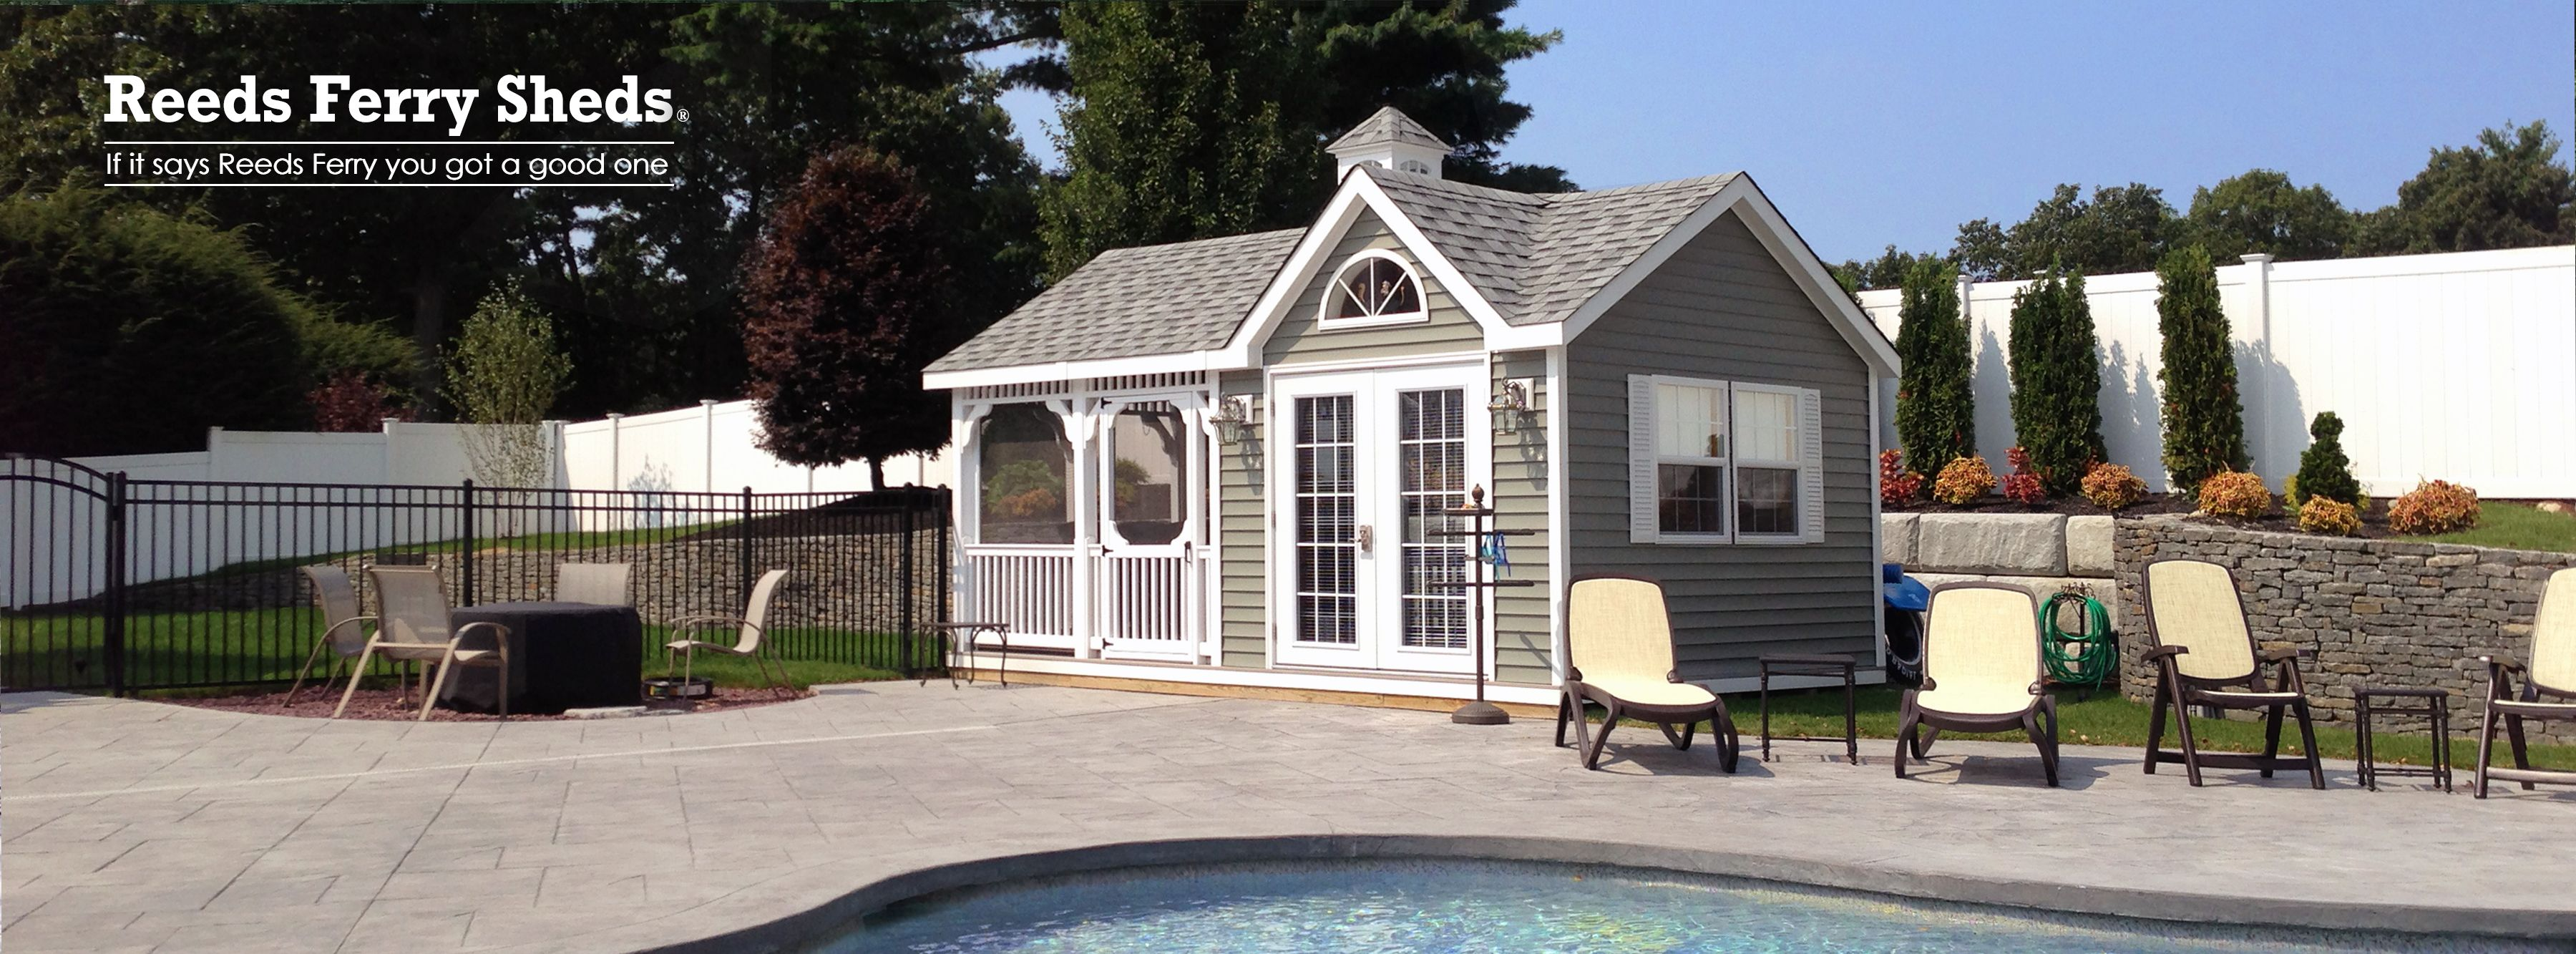 Reeds Ferry Sheds Screened Pool House